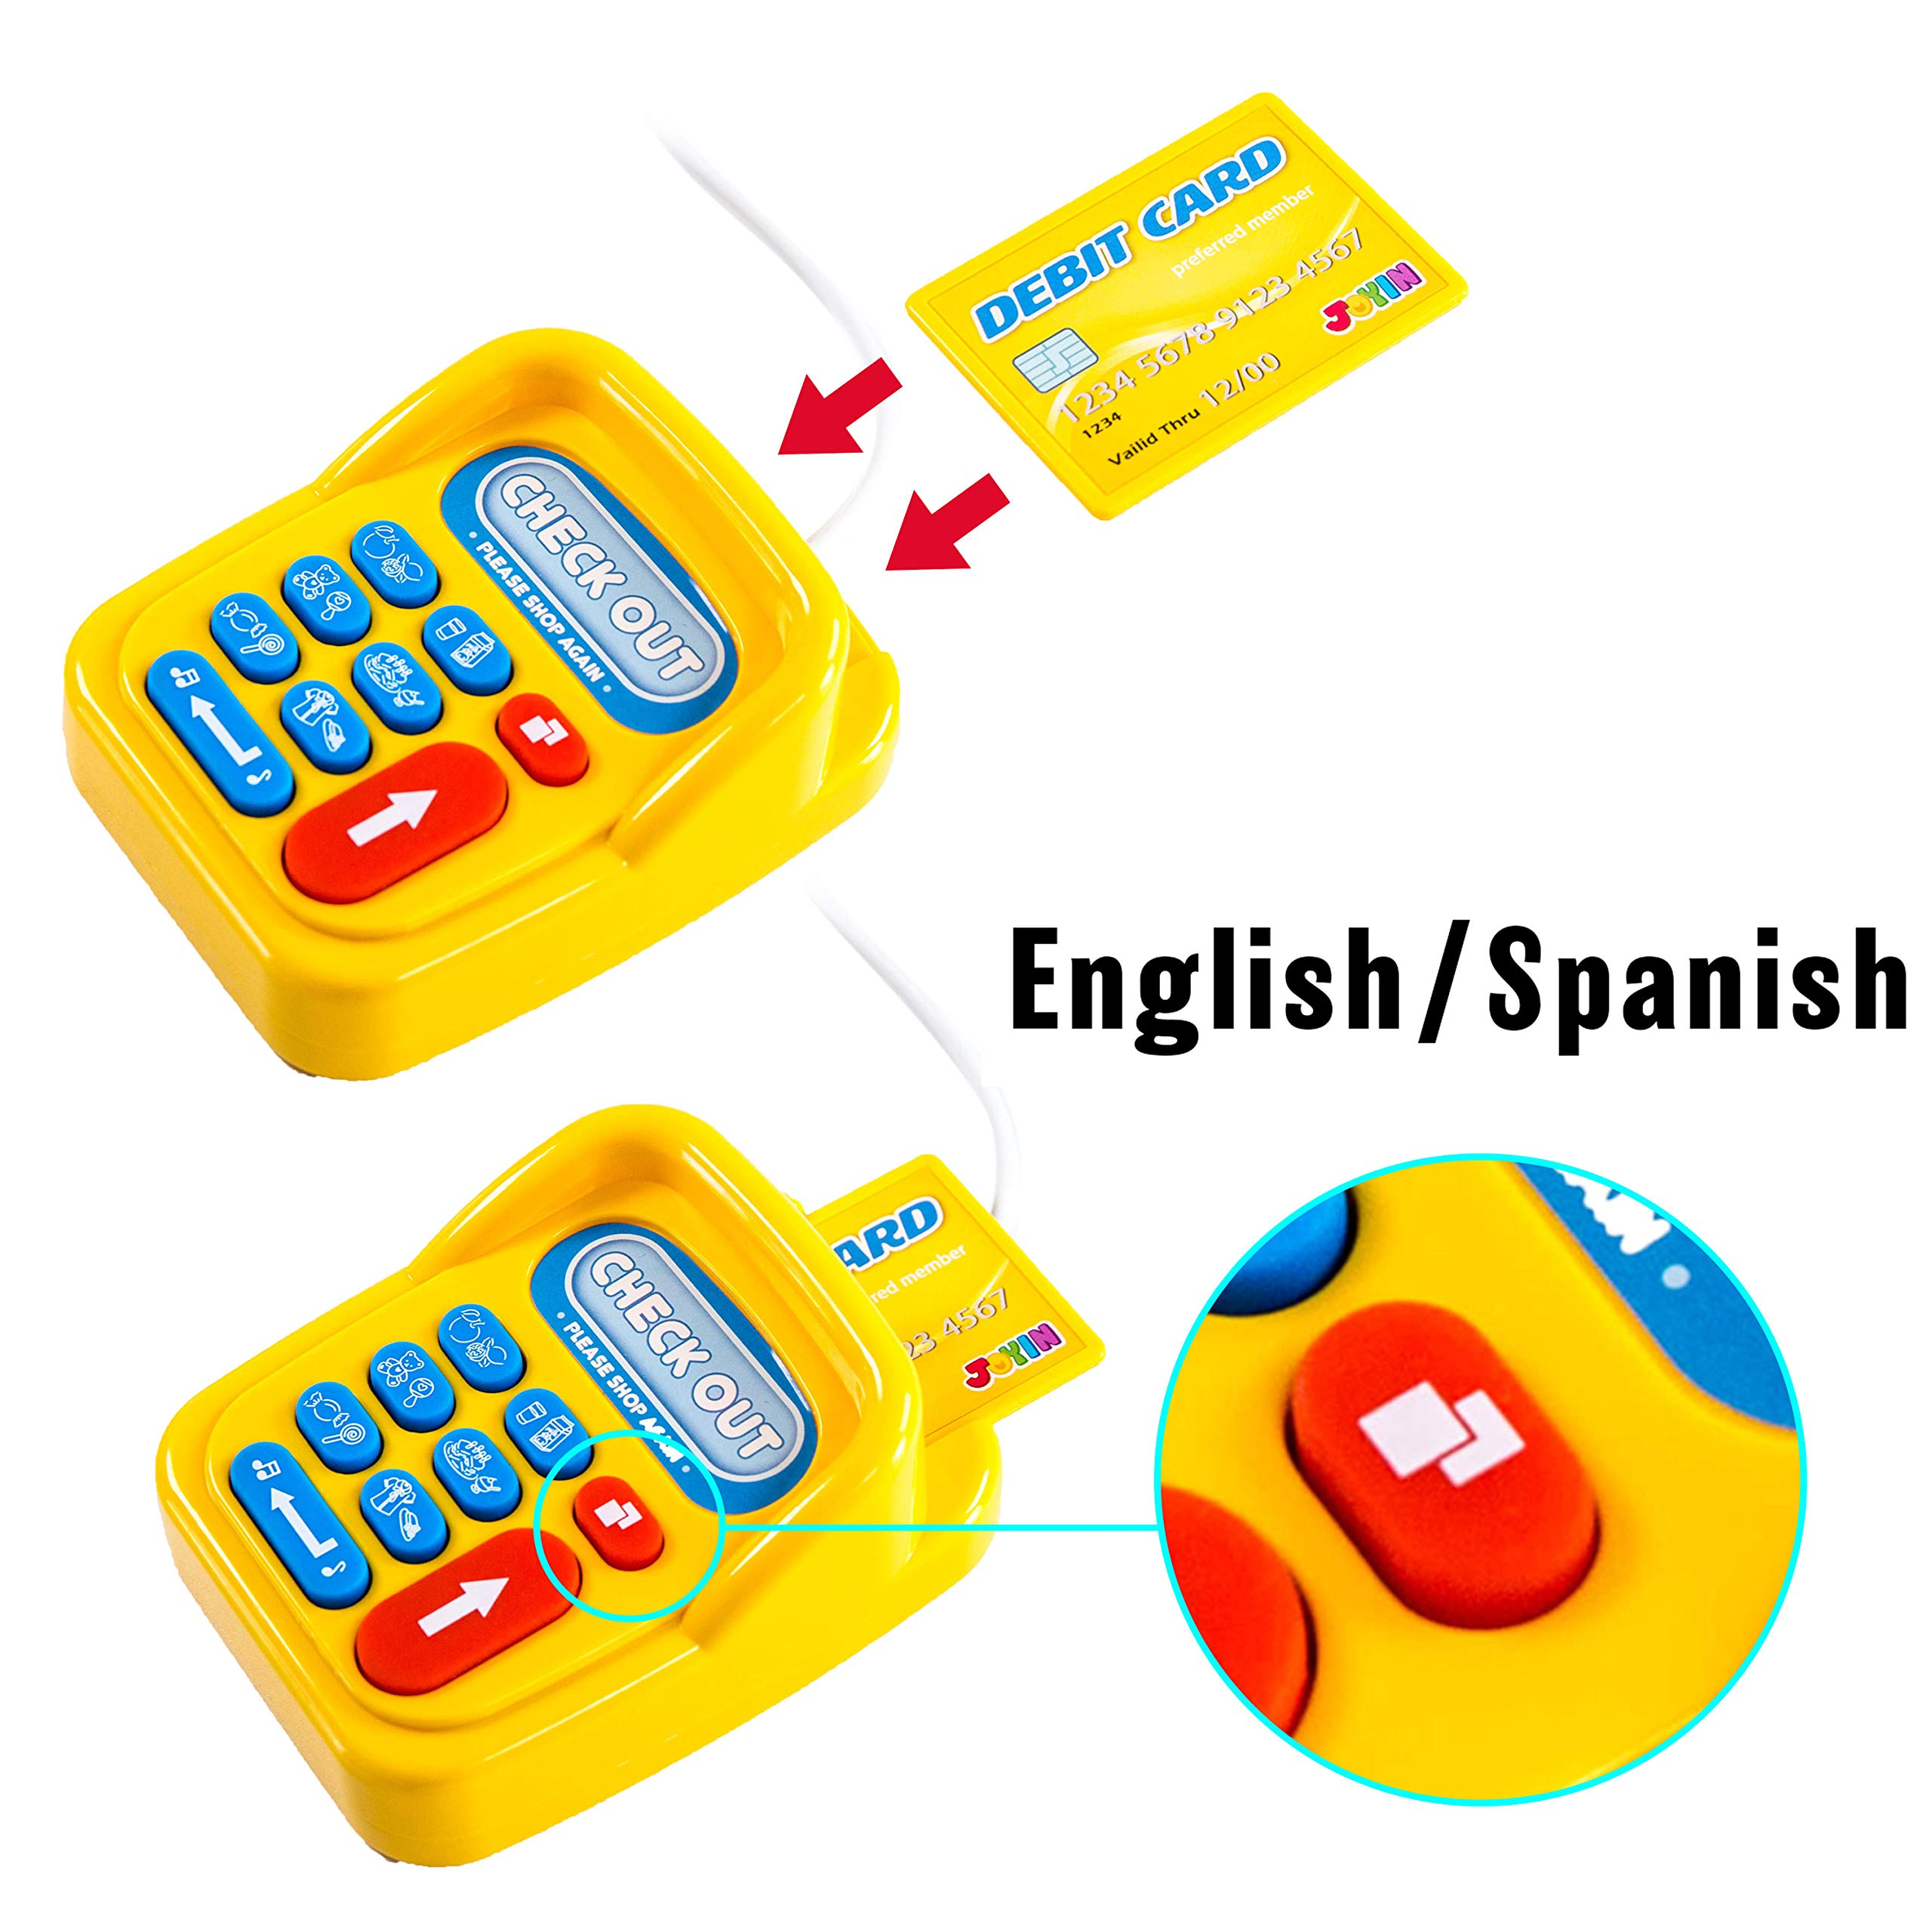 Toy Cash Register Shopping Pretend Play Money Machine with Dual Languages, Scanner, Card Reader and Grocery Play Food Set for Kids Boys and Girls Gifts, Toddler Interactive Learning, Teaching Tools. by JOYIN (Image #2)